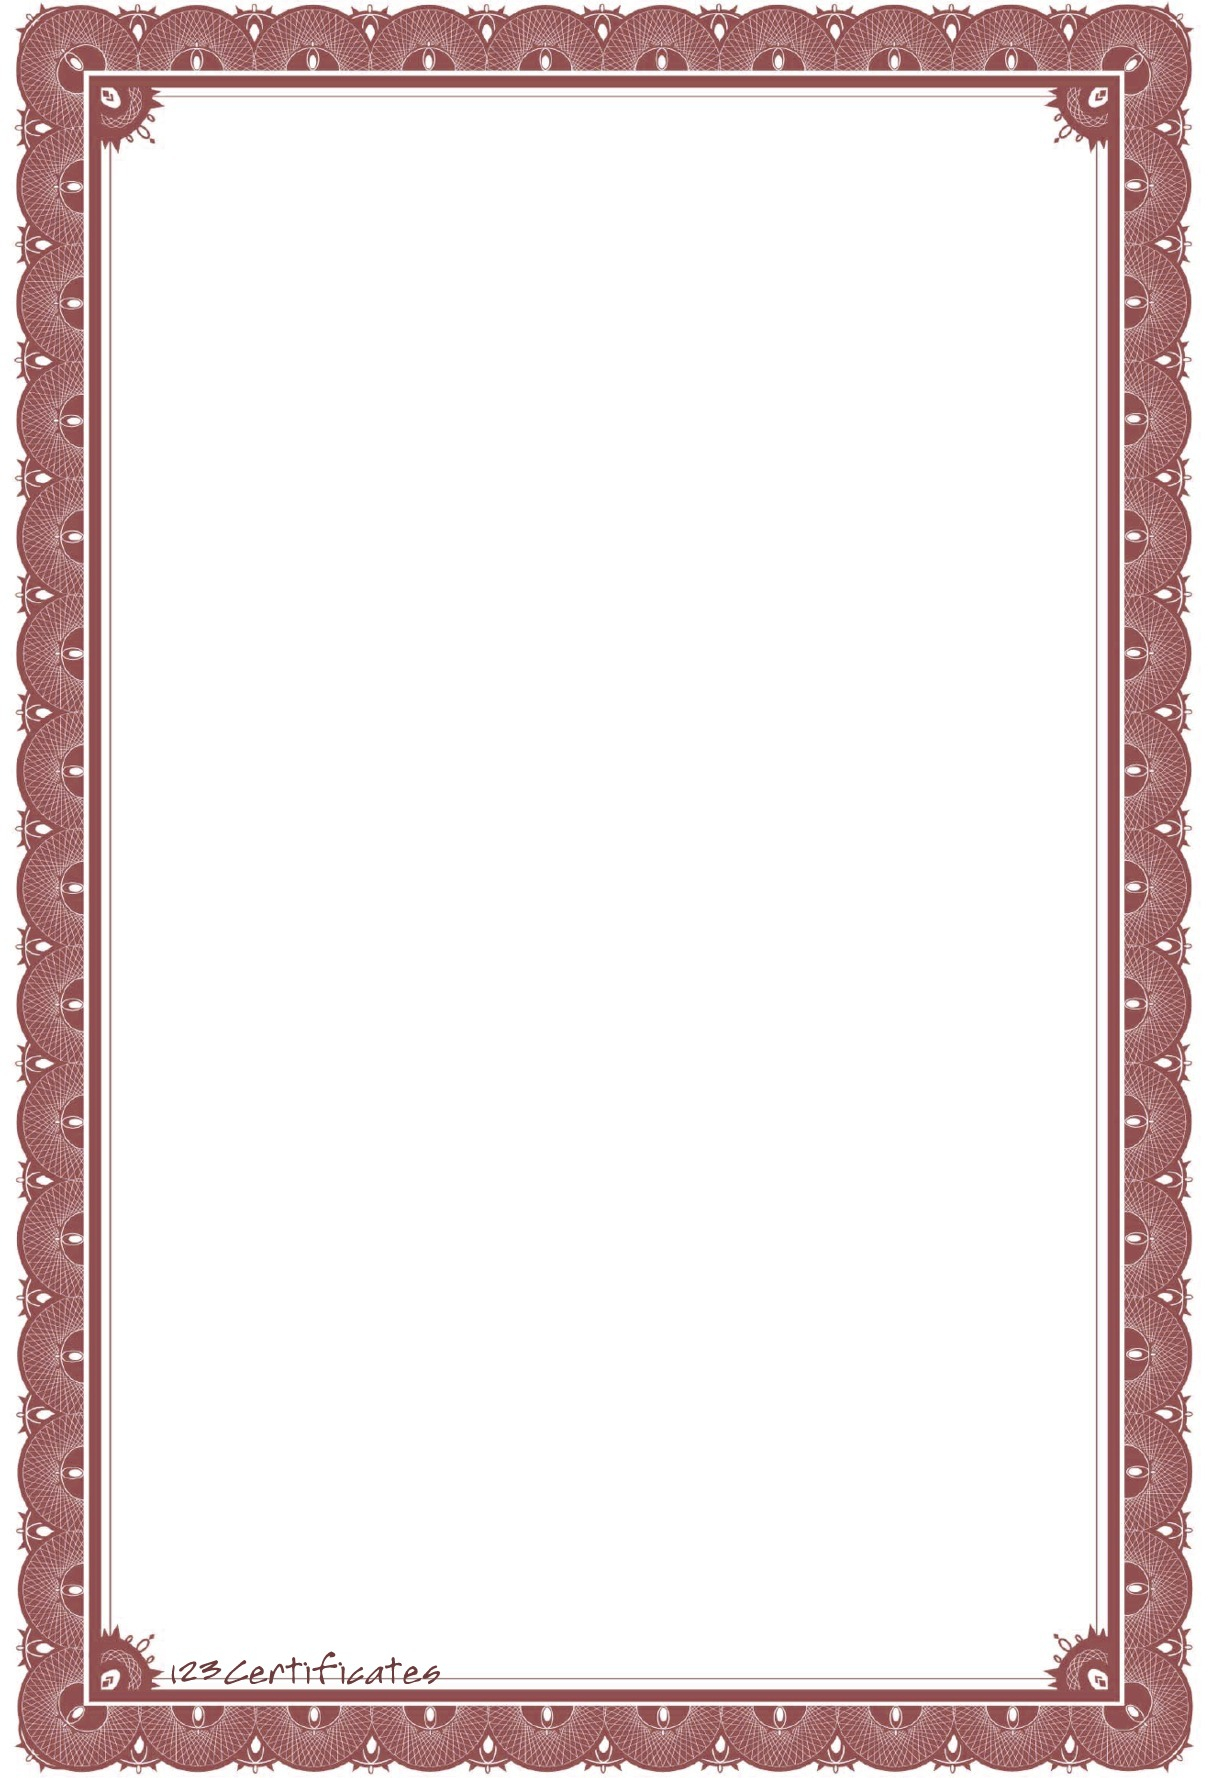 Free certificate border artwork certificate background templates